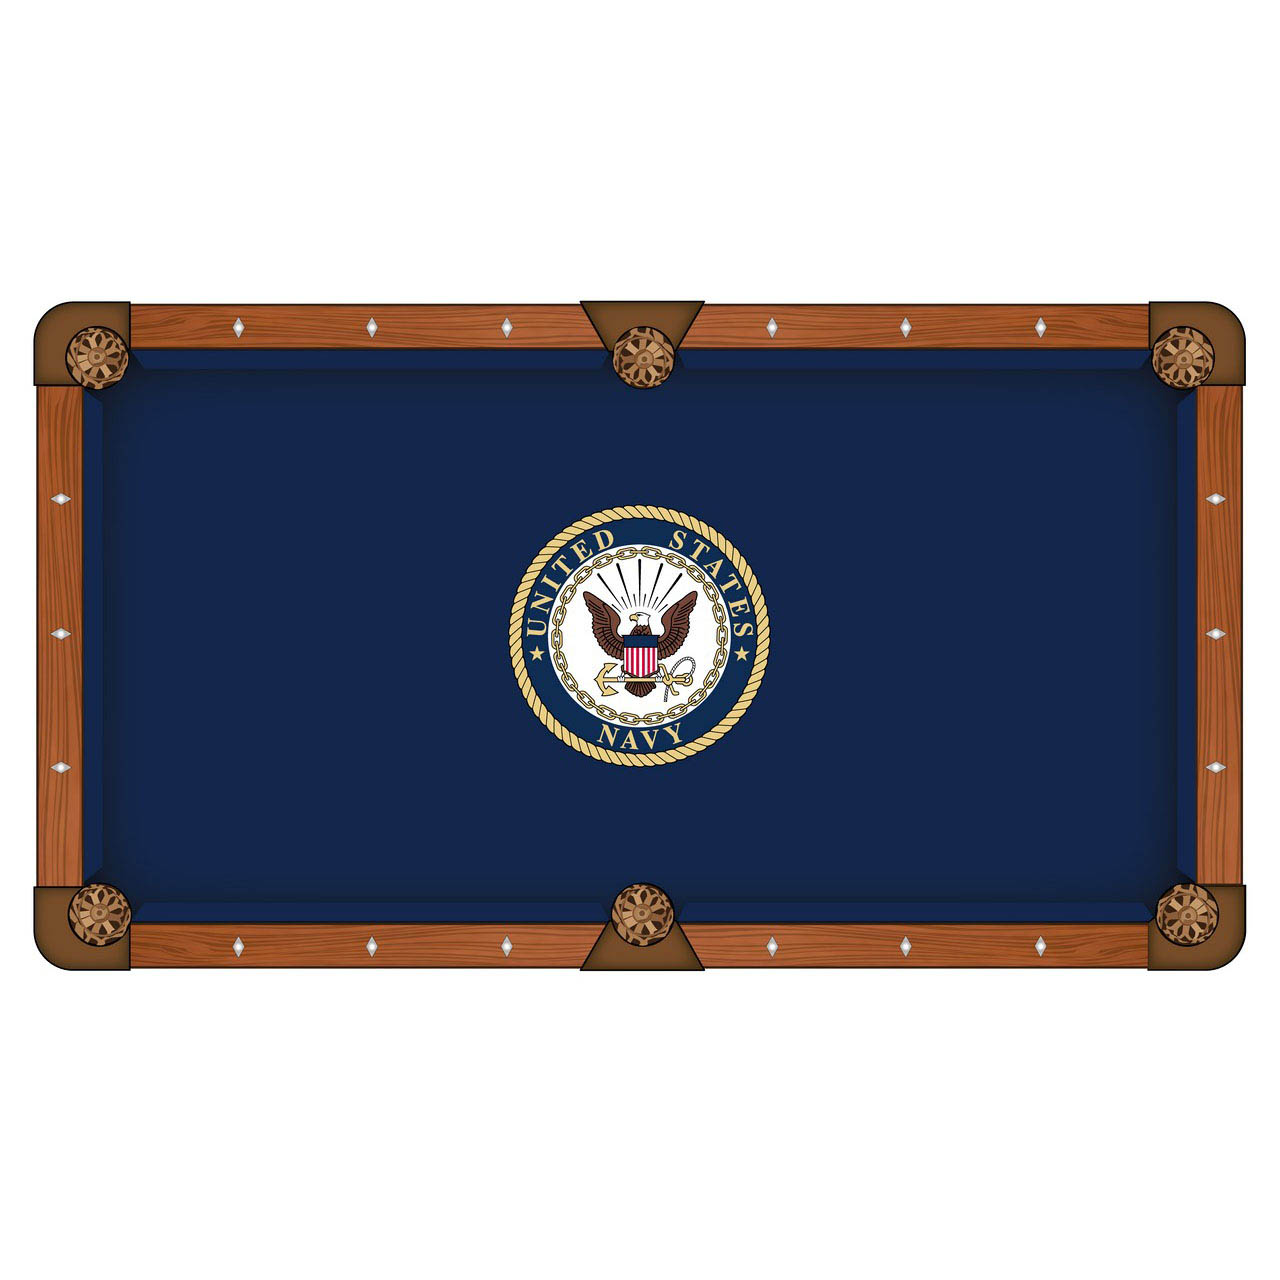 Info about United States Navy Pool Table Cloth Product Photo